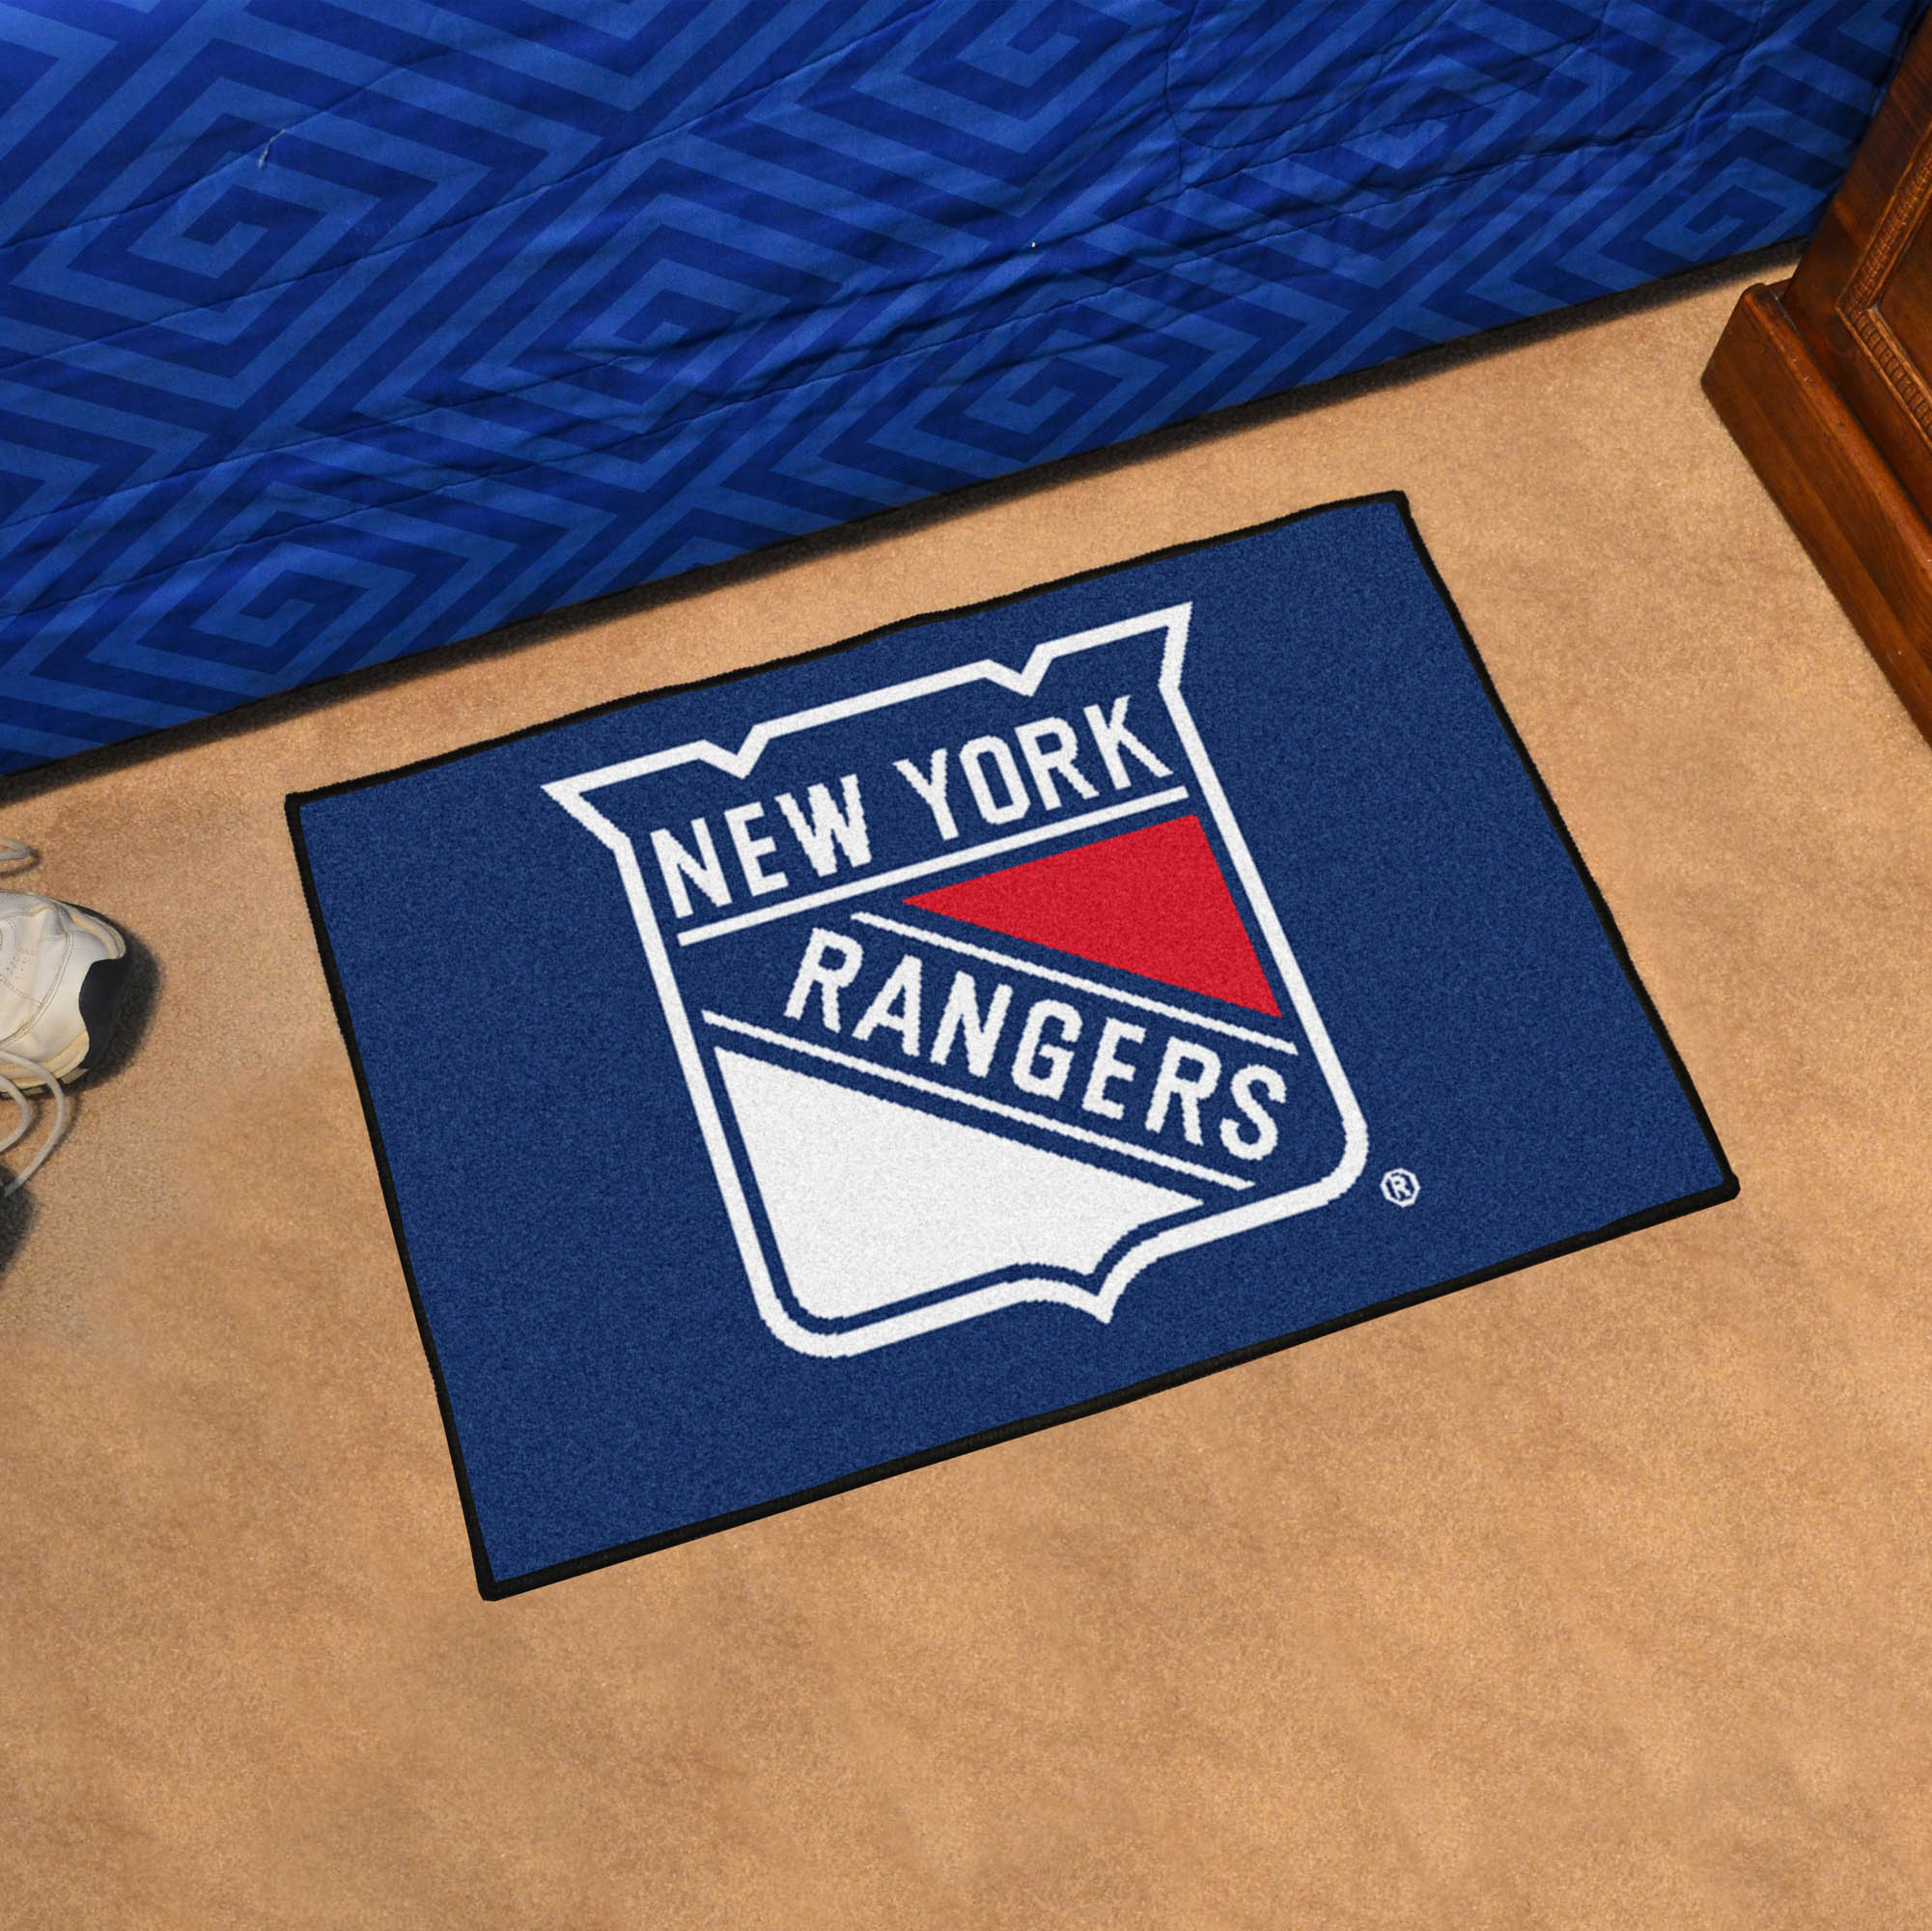 New York Rangers 20 x 30 STARTER Floor Mat